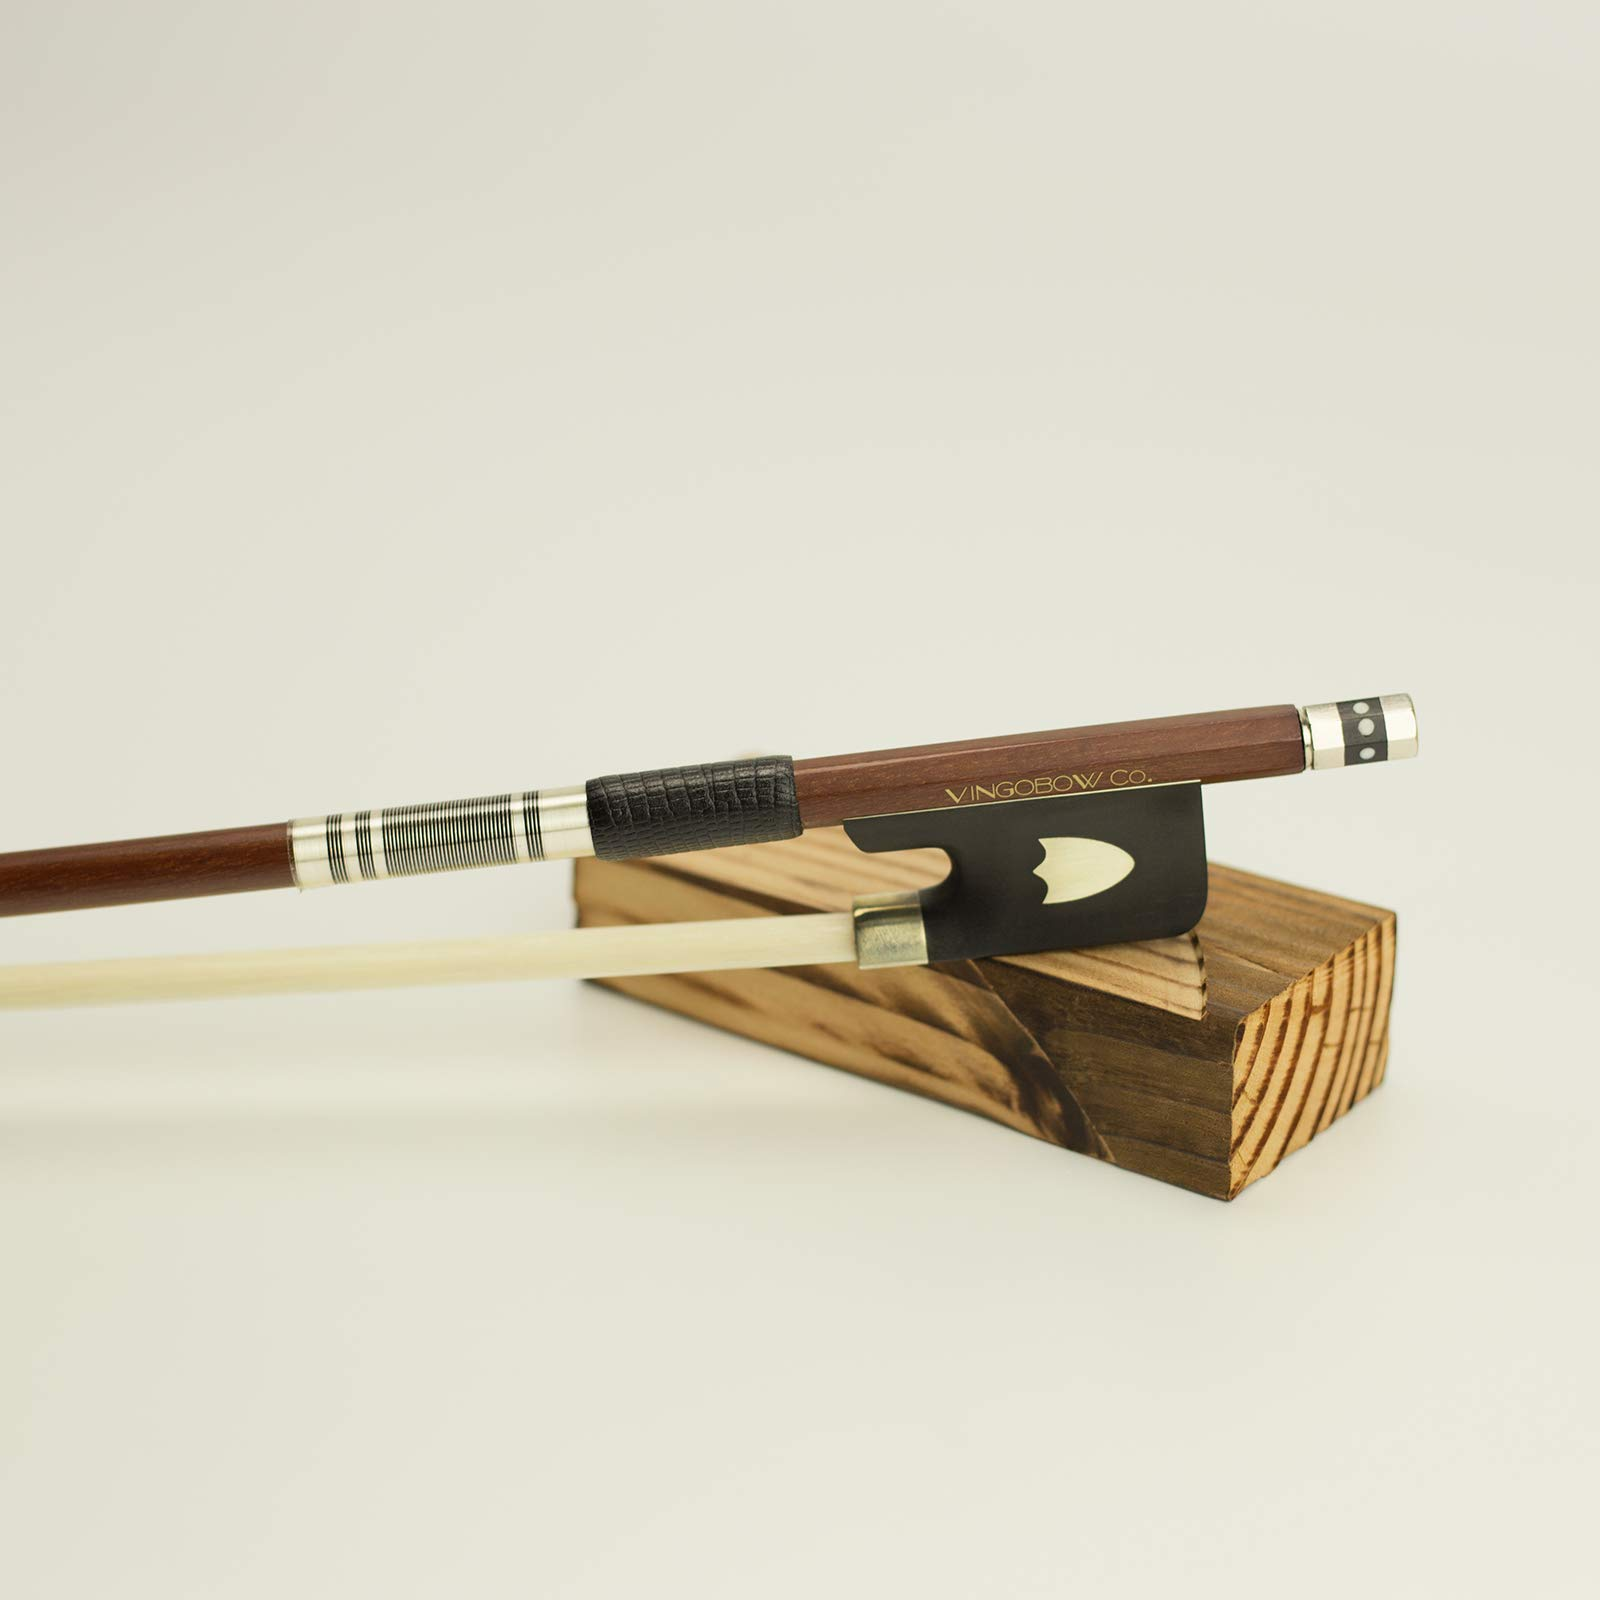 VingoBow Full Size PERNAMBUCO Wood Material Cello Bow For Professional Players! Deep and Poweful SOUND, Natural Horse Hair!! Art No.430C